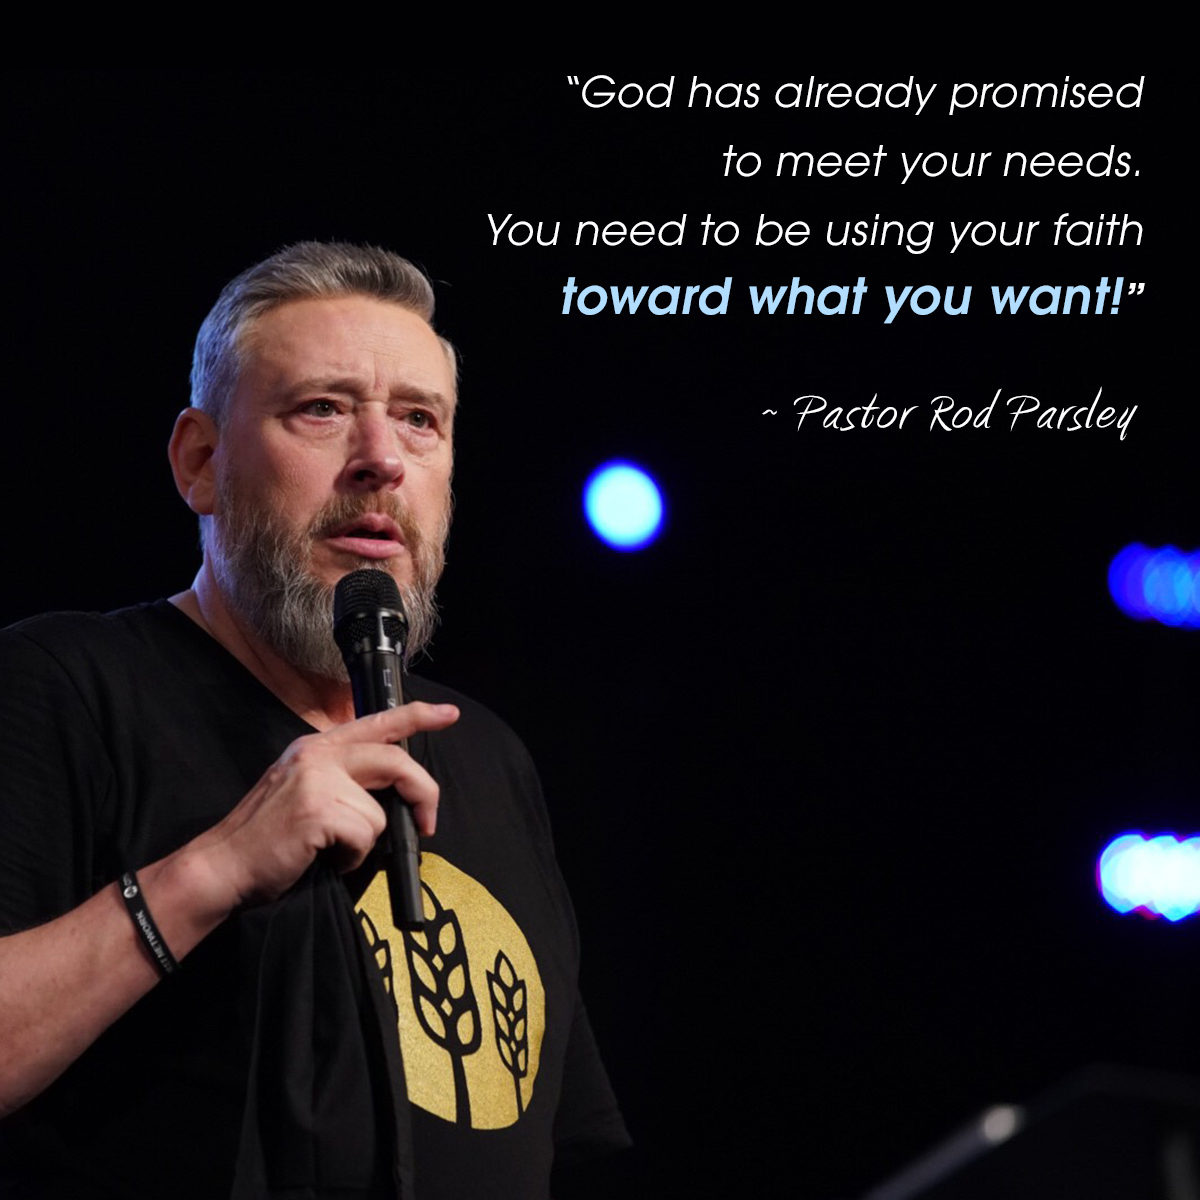 """God has already promised to meet your needs. You need to be using your faith toward what you want!"" – Pastor Rod Parsley"